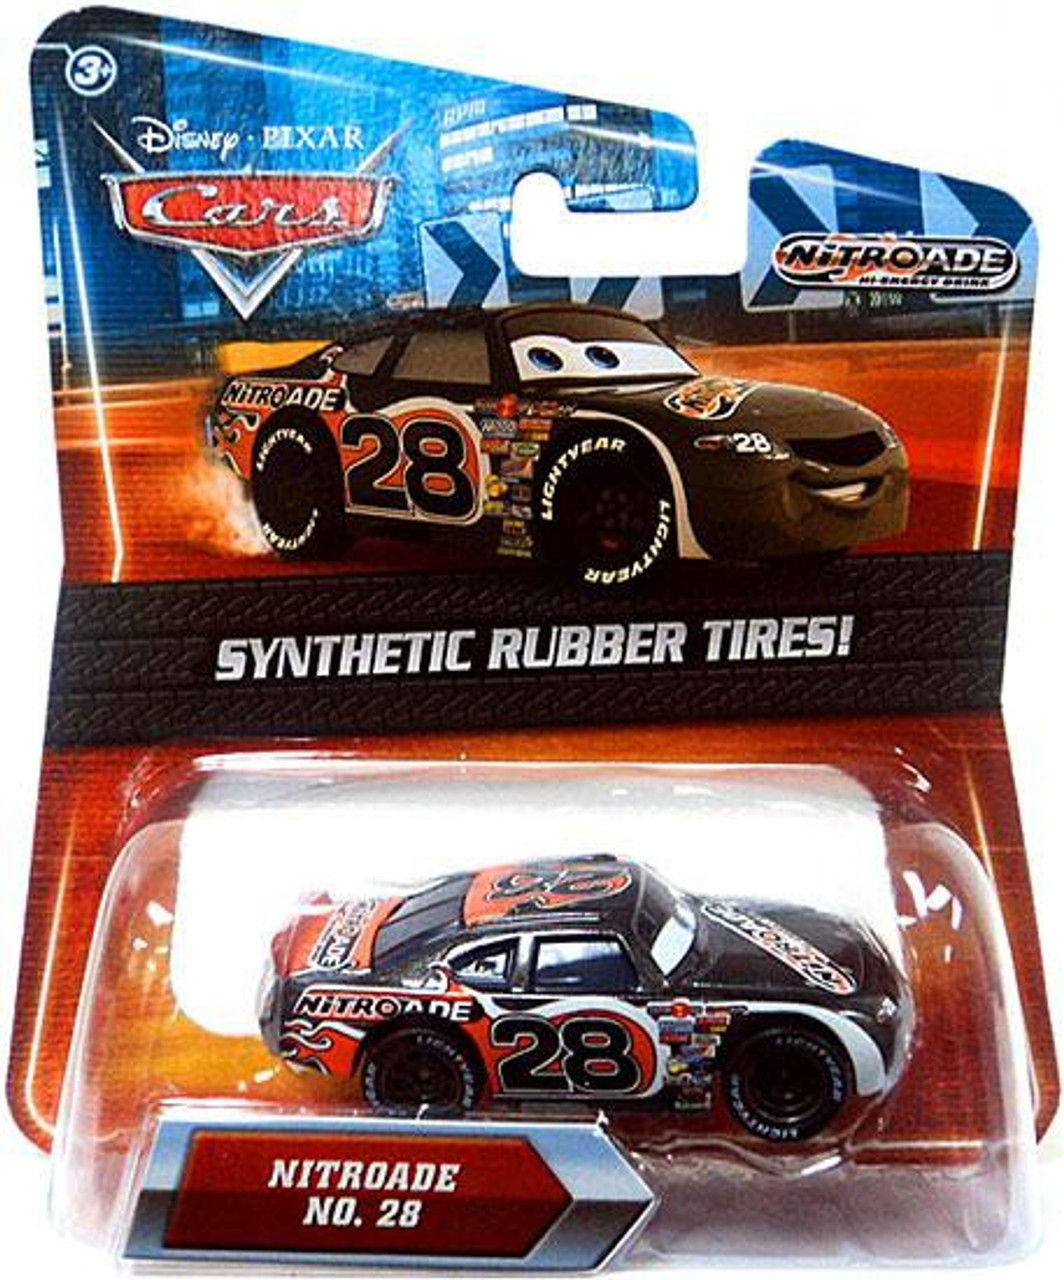 Disney Cars Synthetic Rubber Tires Nitroade Exclusive Diecast Car